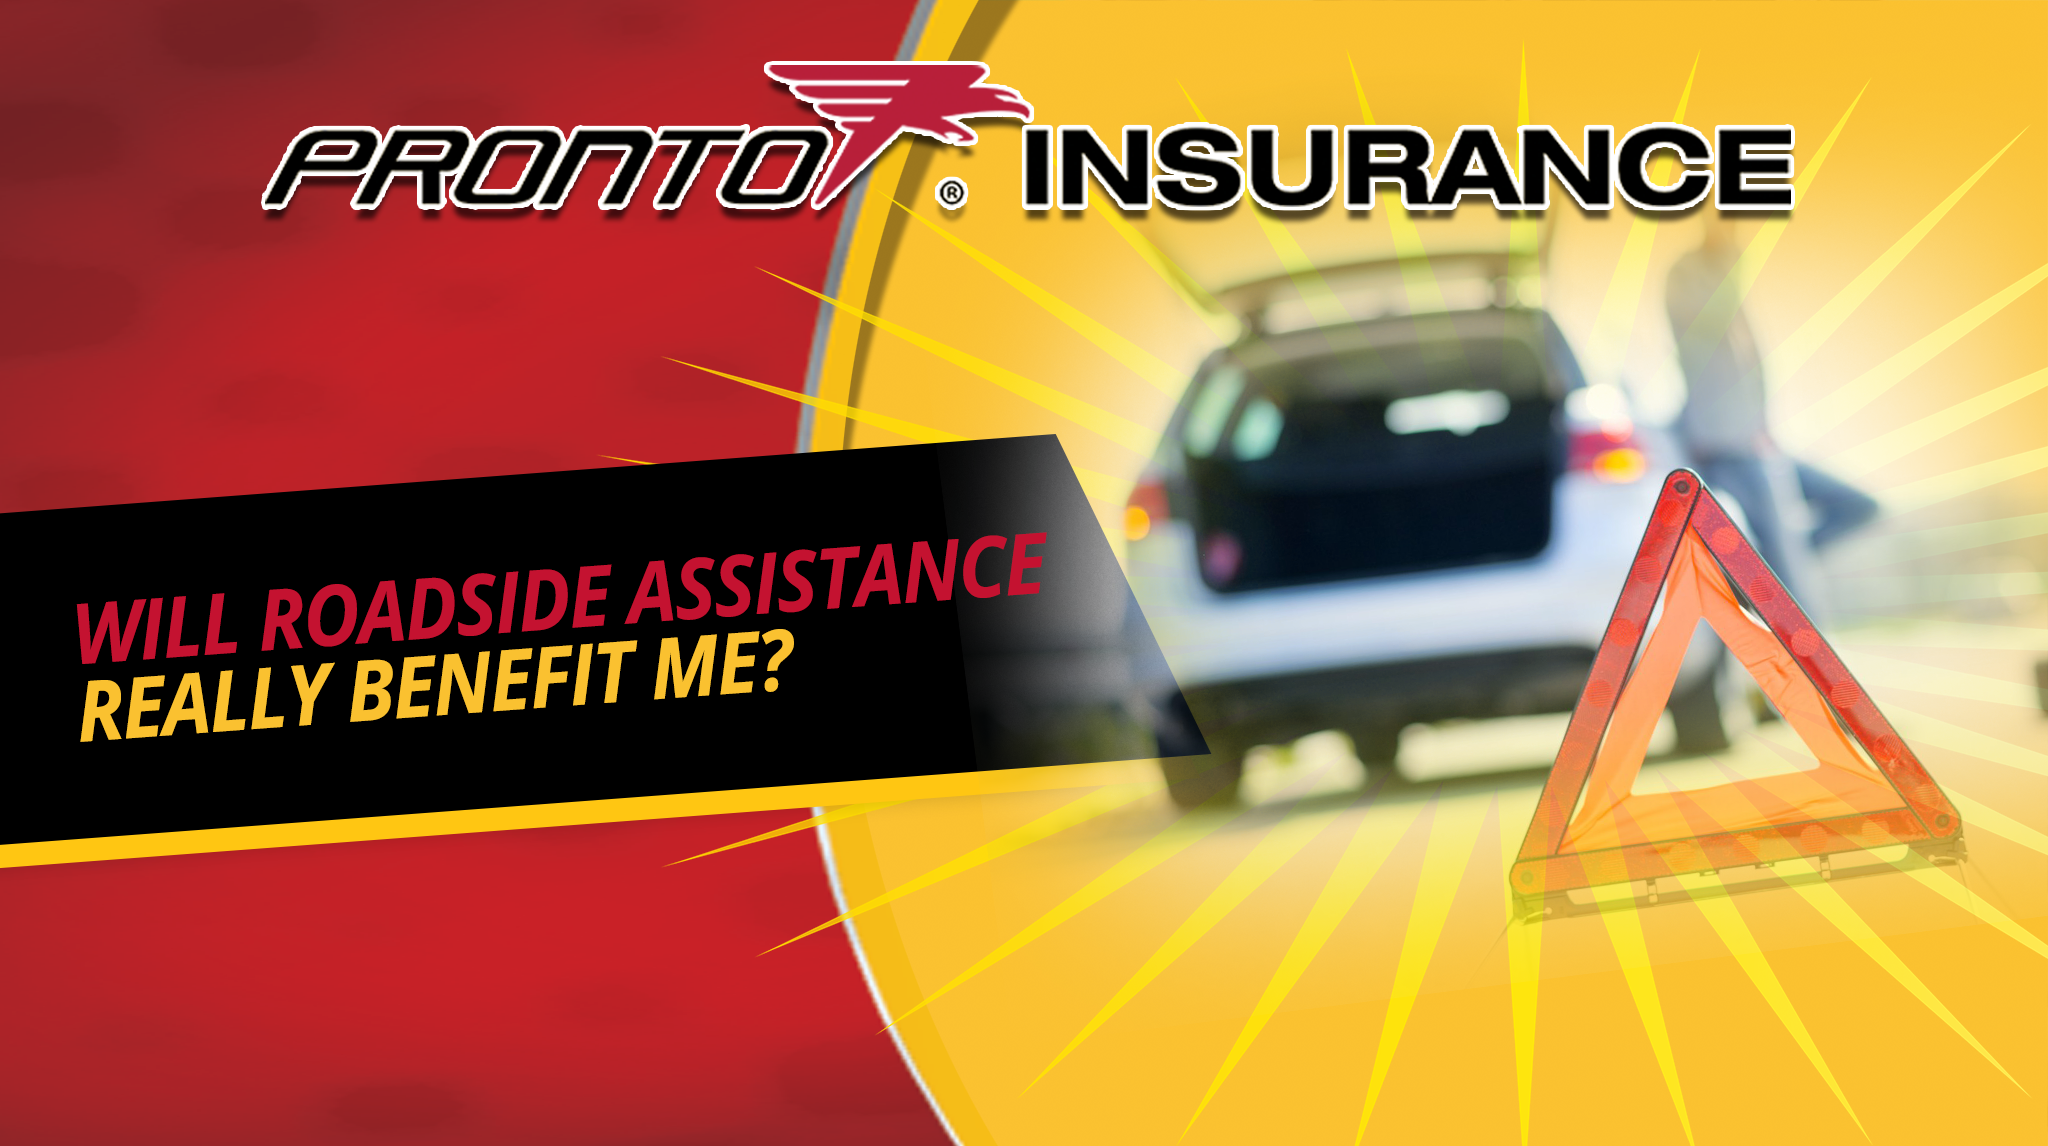 Will Roadside Assistance Really Benefit Me?